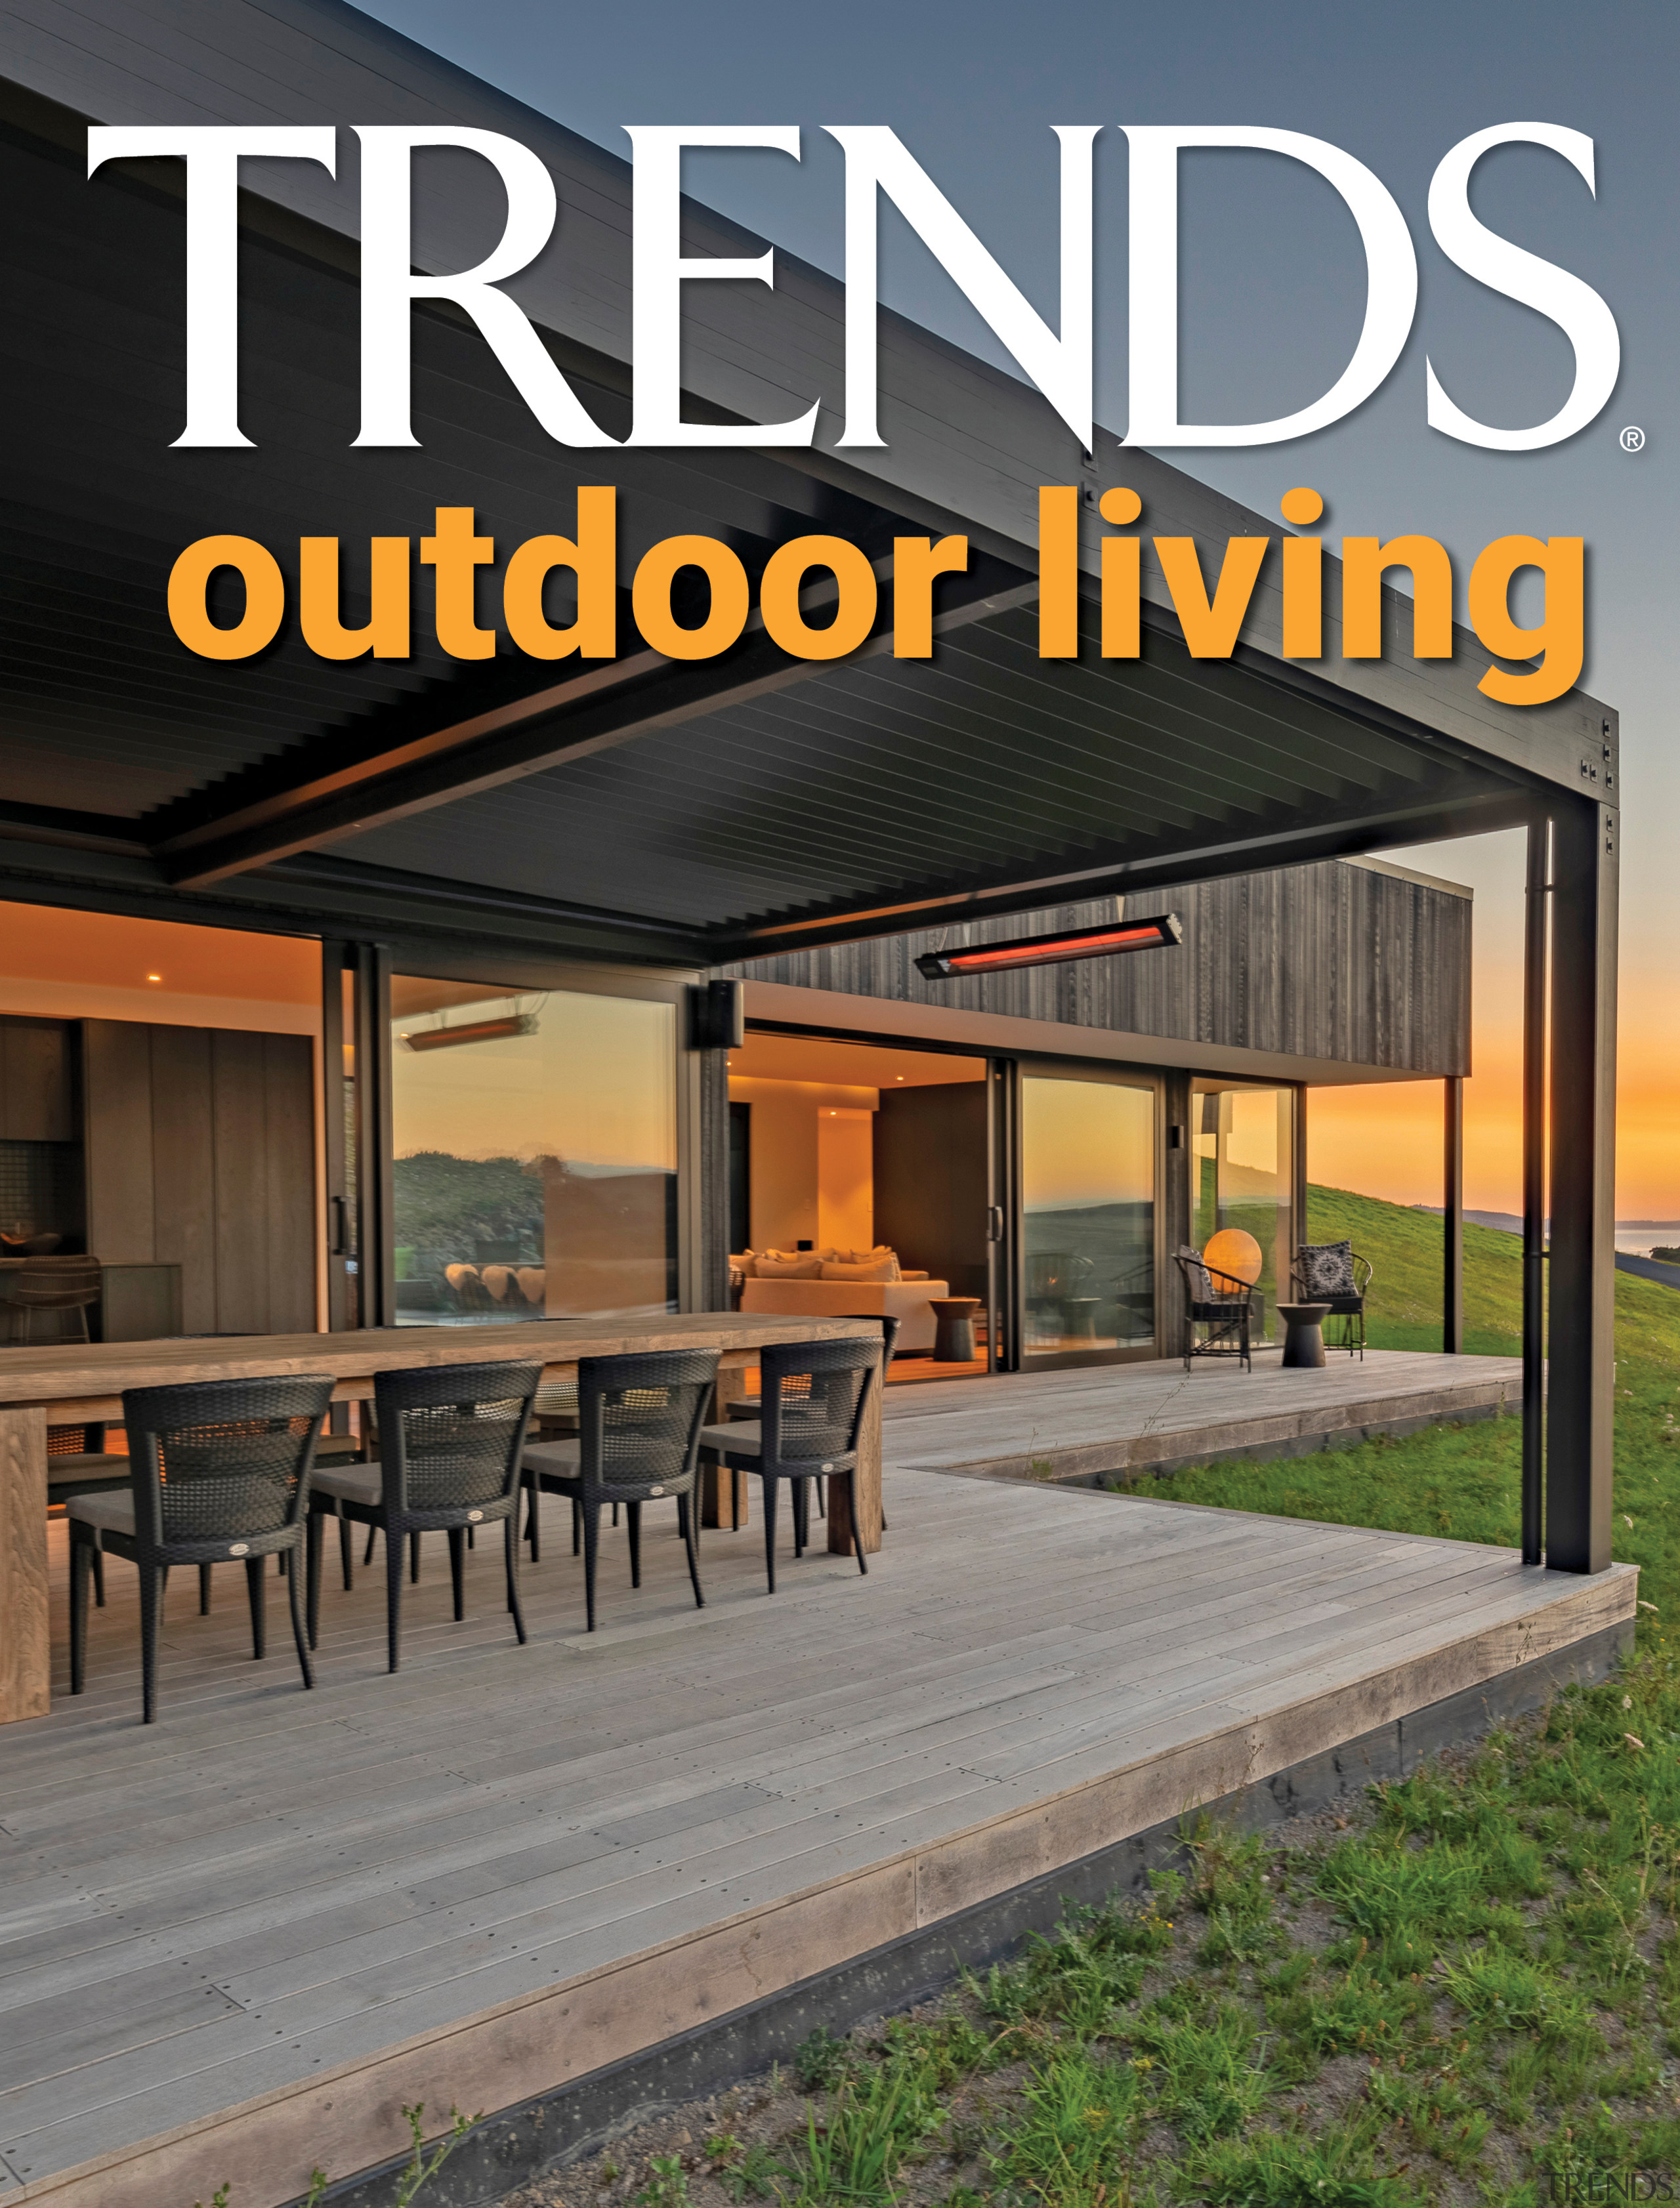 TRENDS MINI COVER outdoor living -